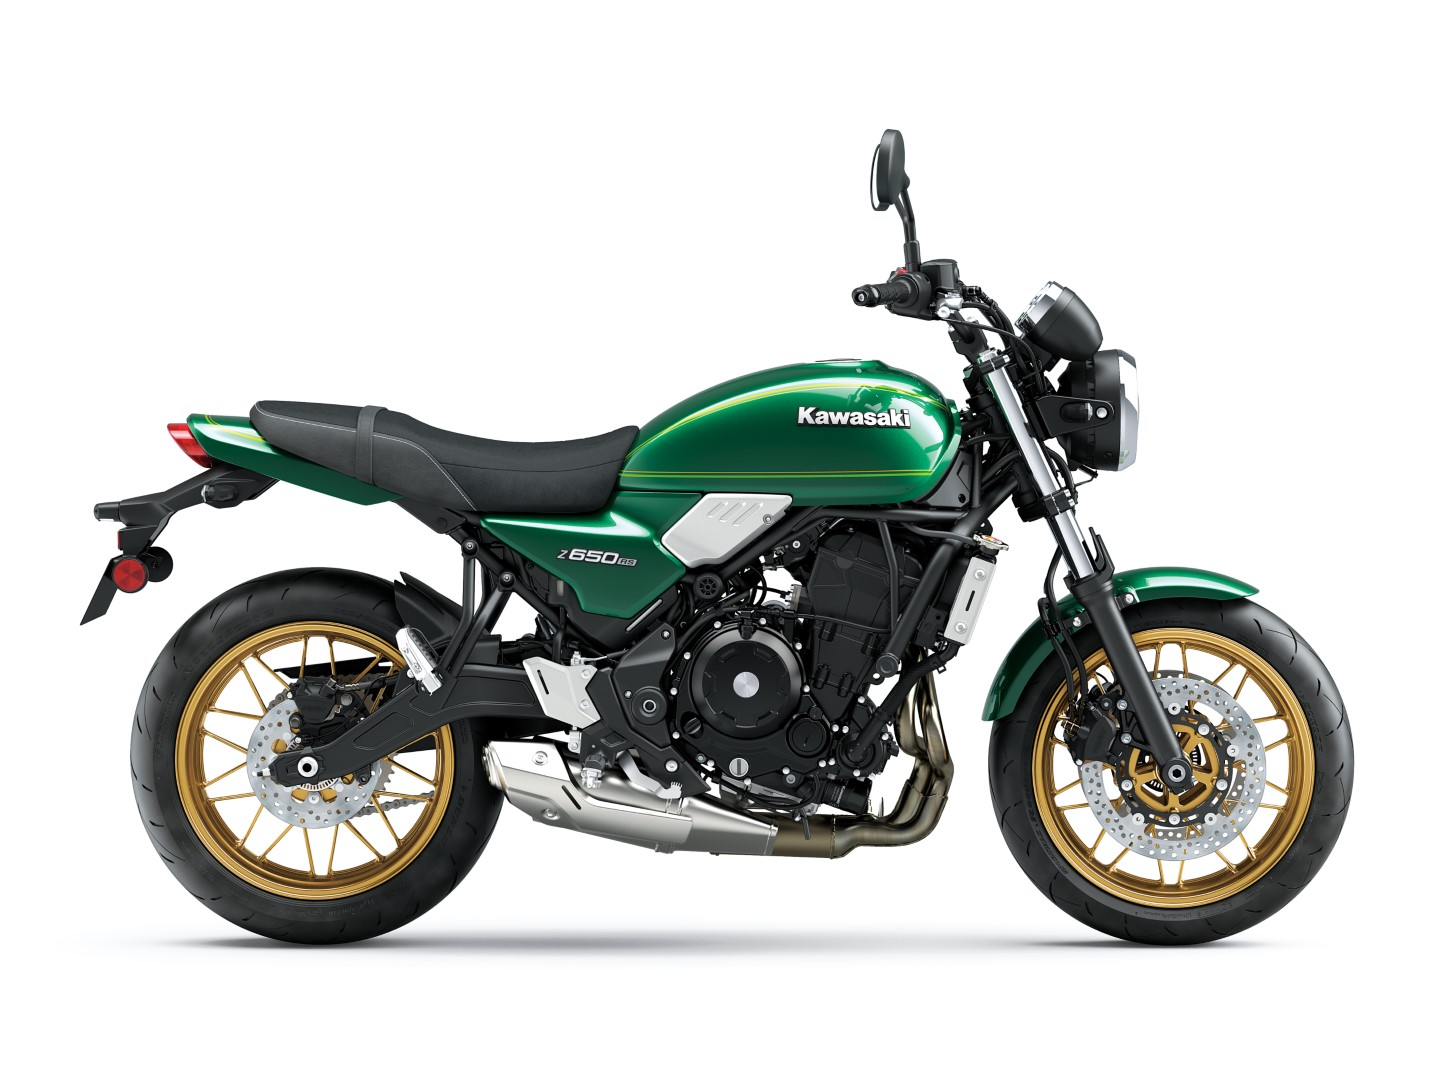 Z650RS